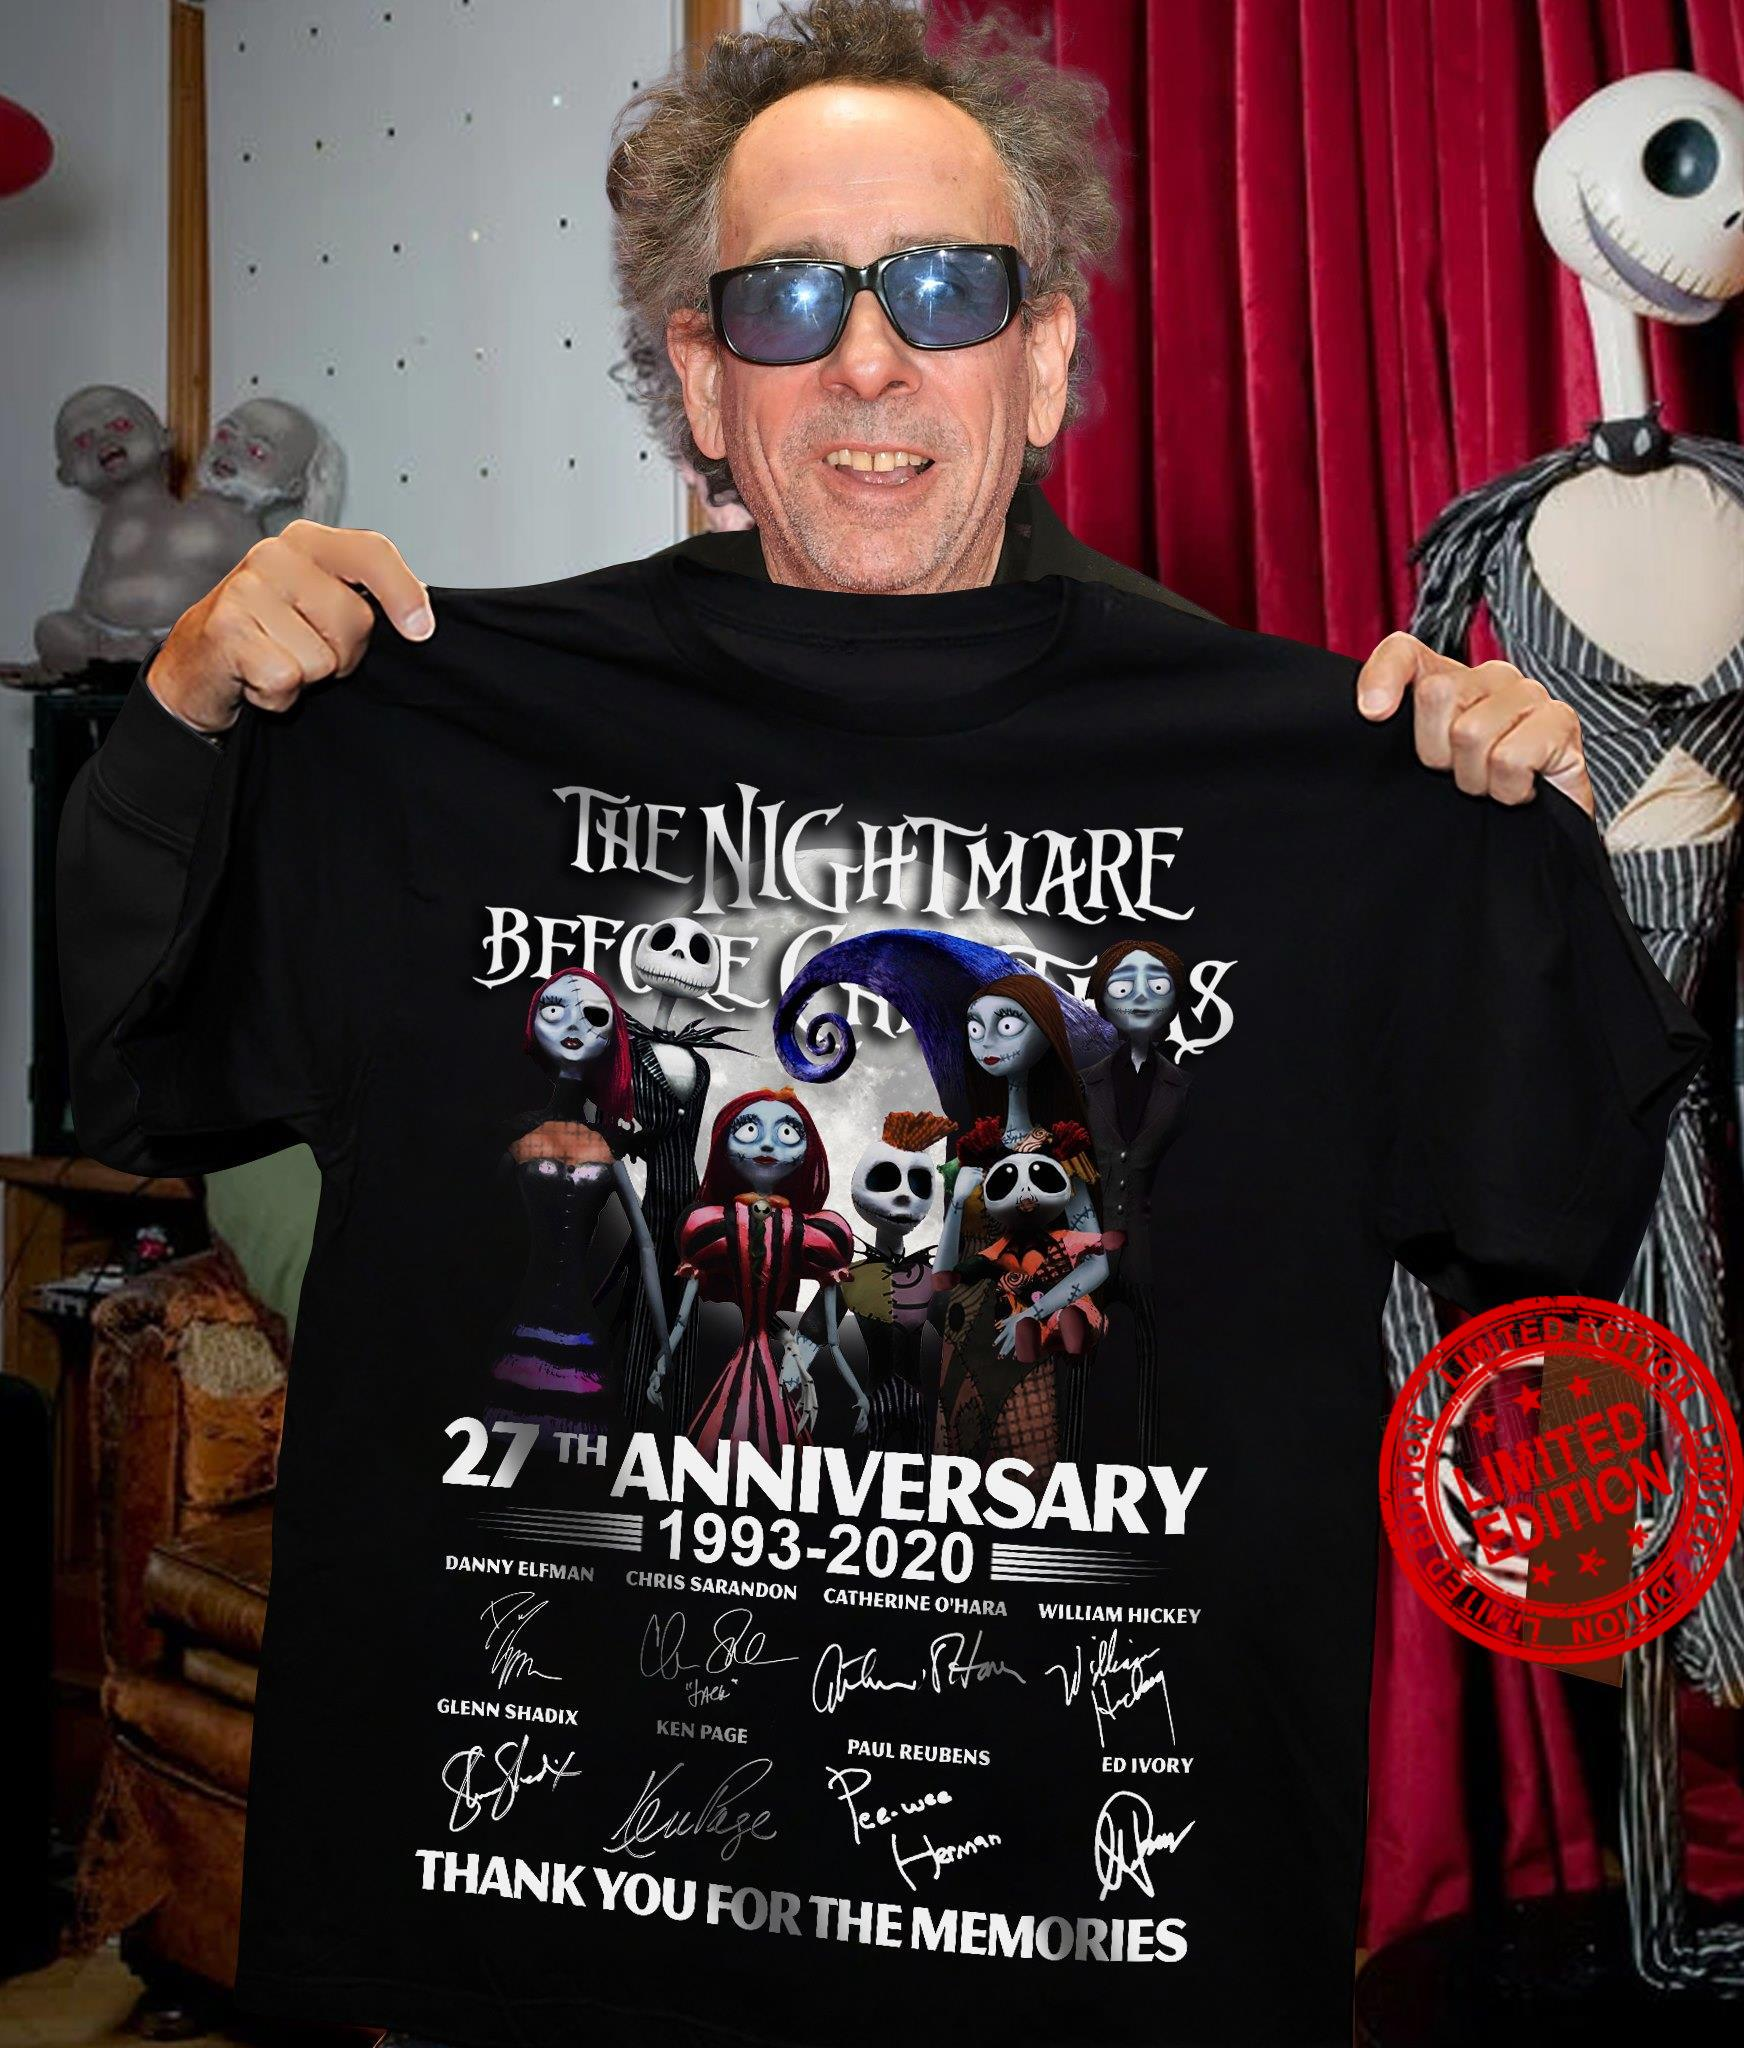 The Nightmare Before Christmas 27th Anniversary 1993 2020 Thank You For The Memories Shirt